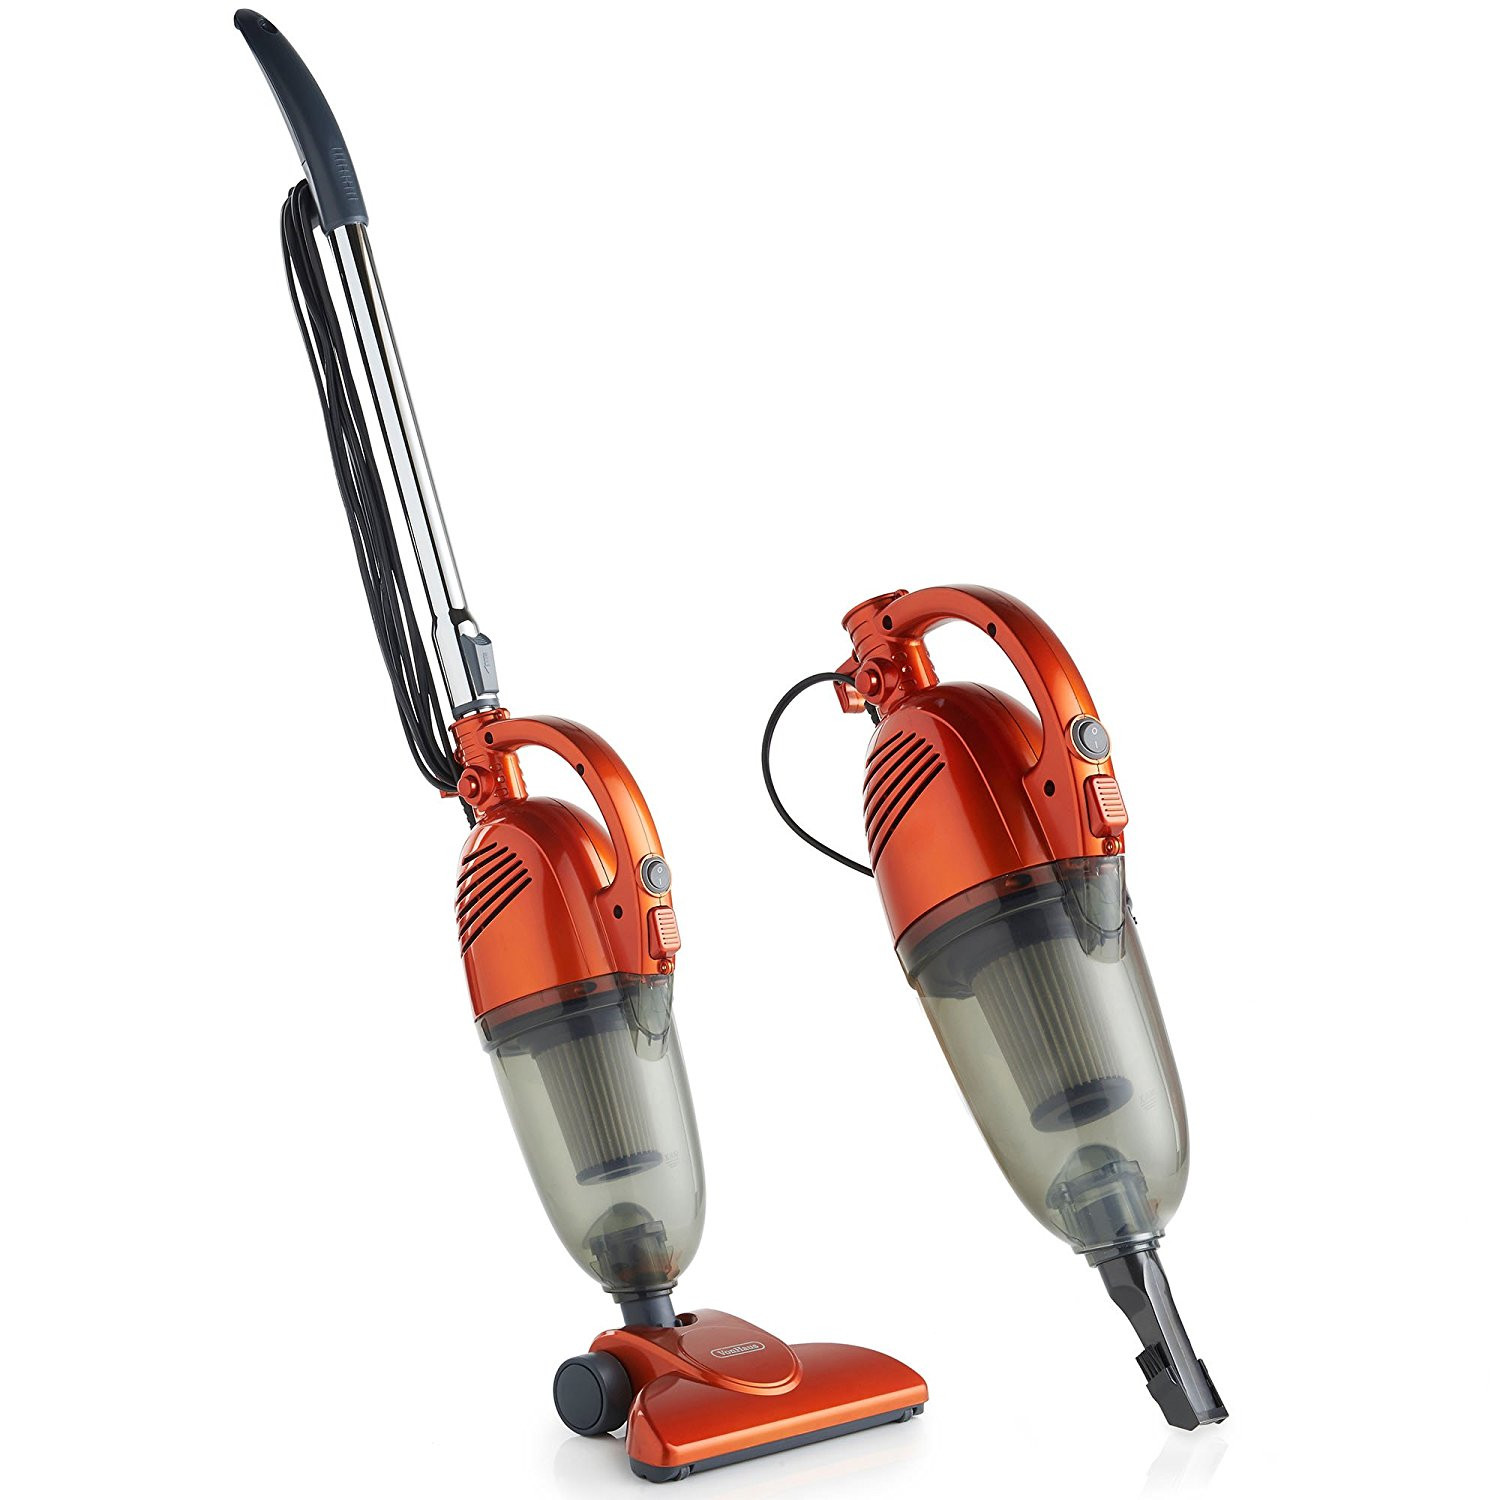 hardwood floor vacuum pet hair of 10 best vacuum for hardwood floors in 2018 complete guide for vonhaus 600w 2 in 1 corded upright stick handheld vacuum cleaner with hepa